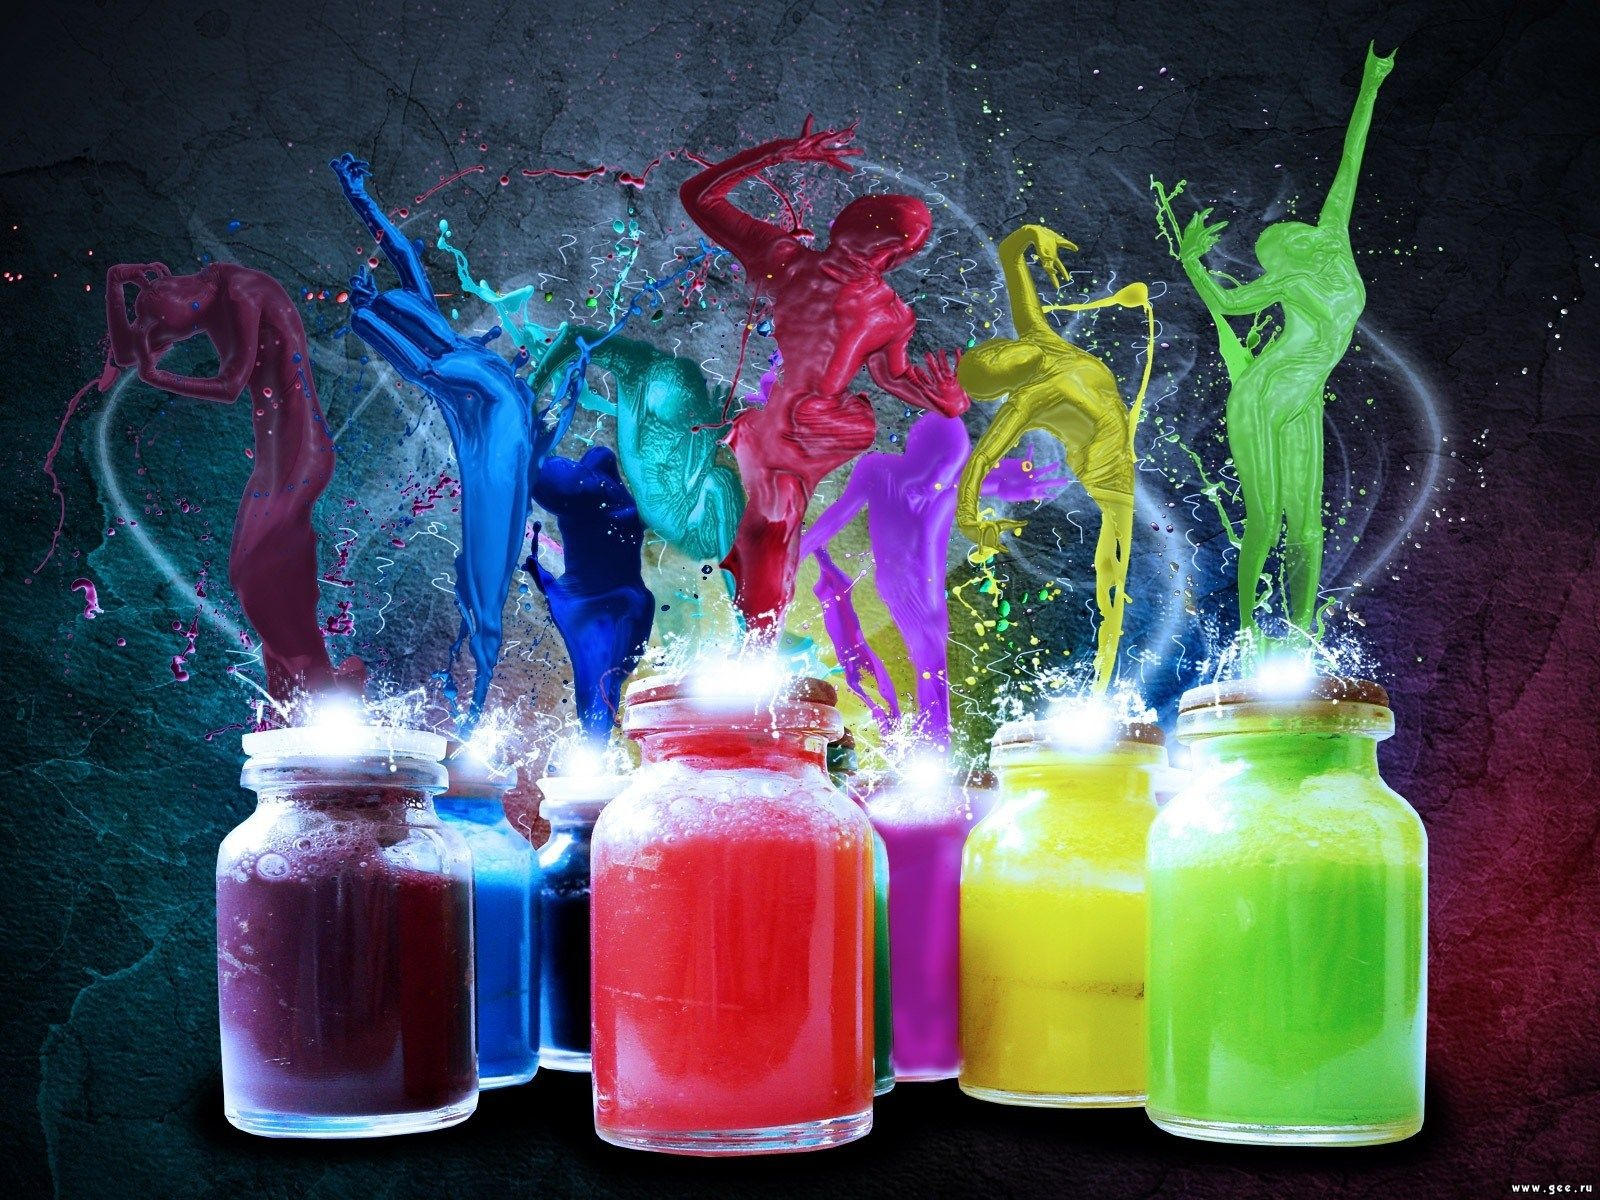 1000+ images about Colorful wallpaper on Pinterest | Neon